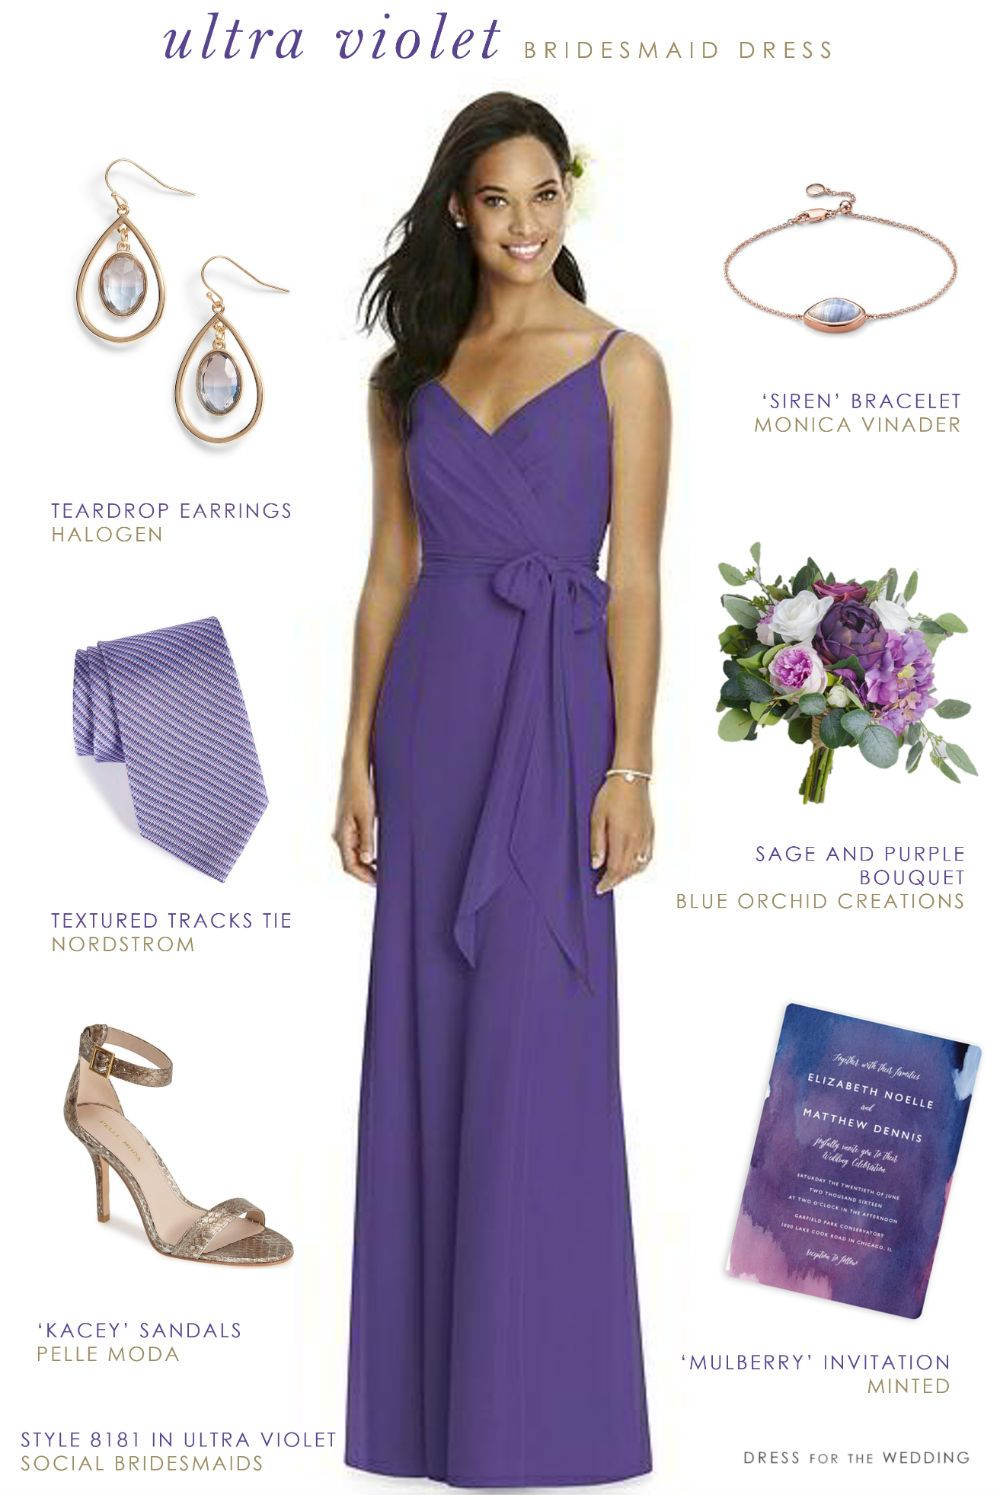 Ultra Violet Bridesmaid Dress | Boda